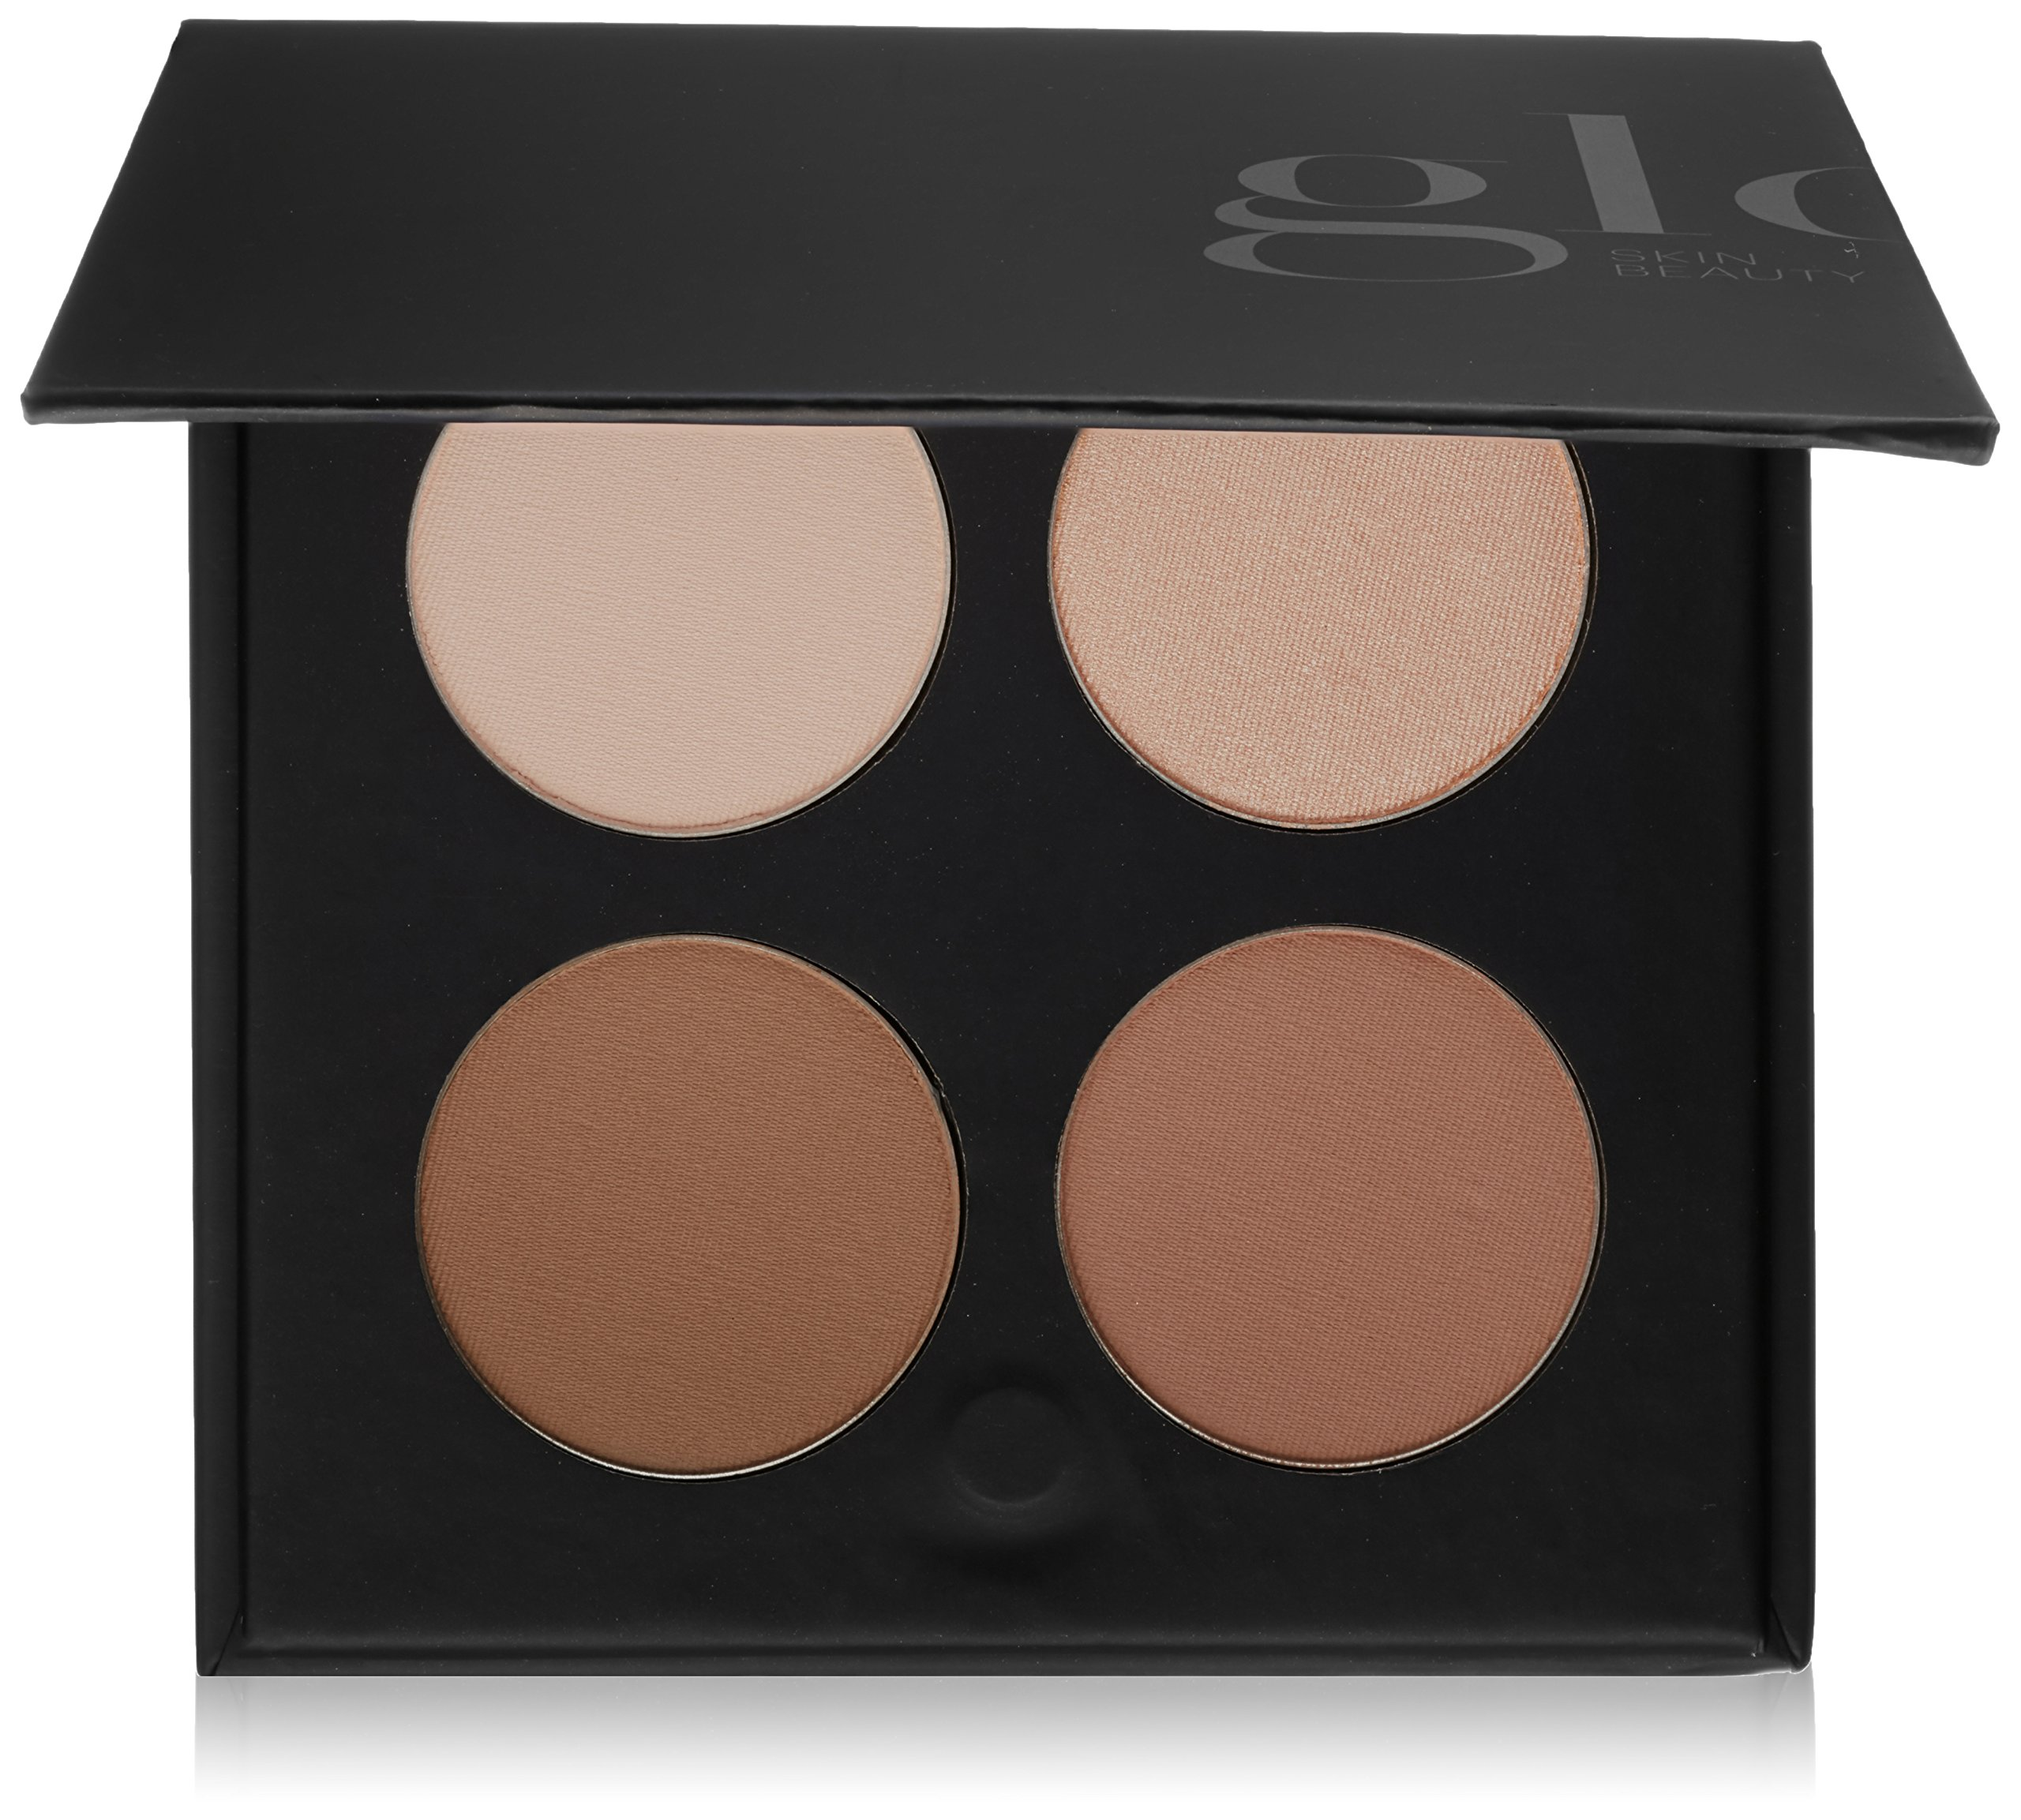 Glo Skin Beauty Contour Kit in Fair to Light | Face Contour and Highlight Palette with Instructions | 2 Shade Options